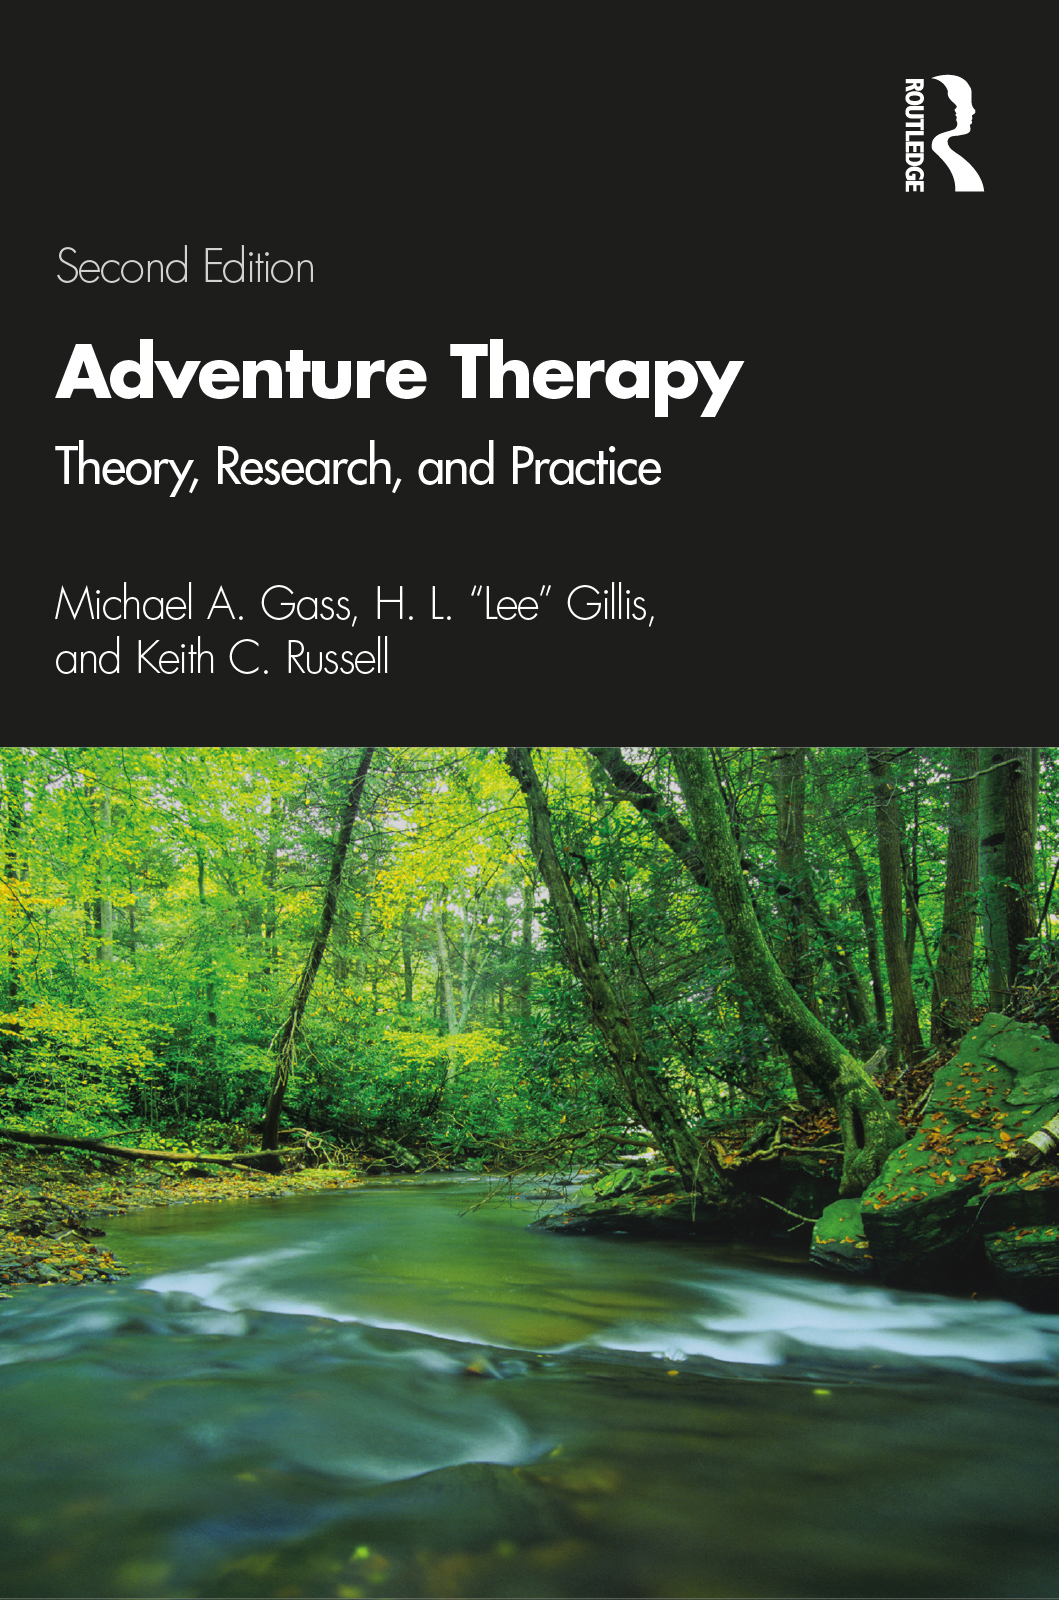 Adventure Therapy: Theory, Research, and Practice book cover